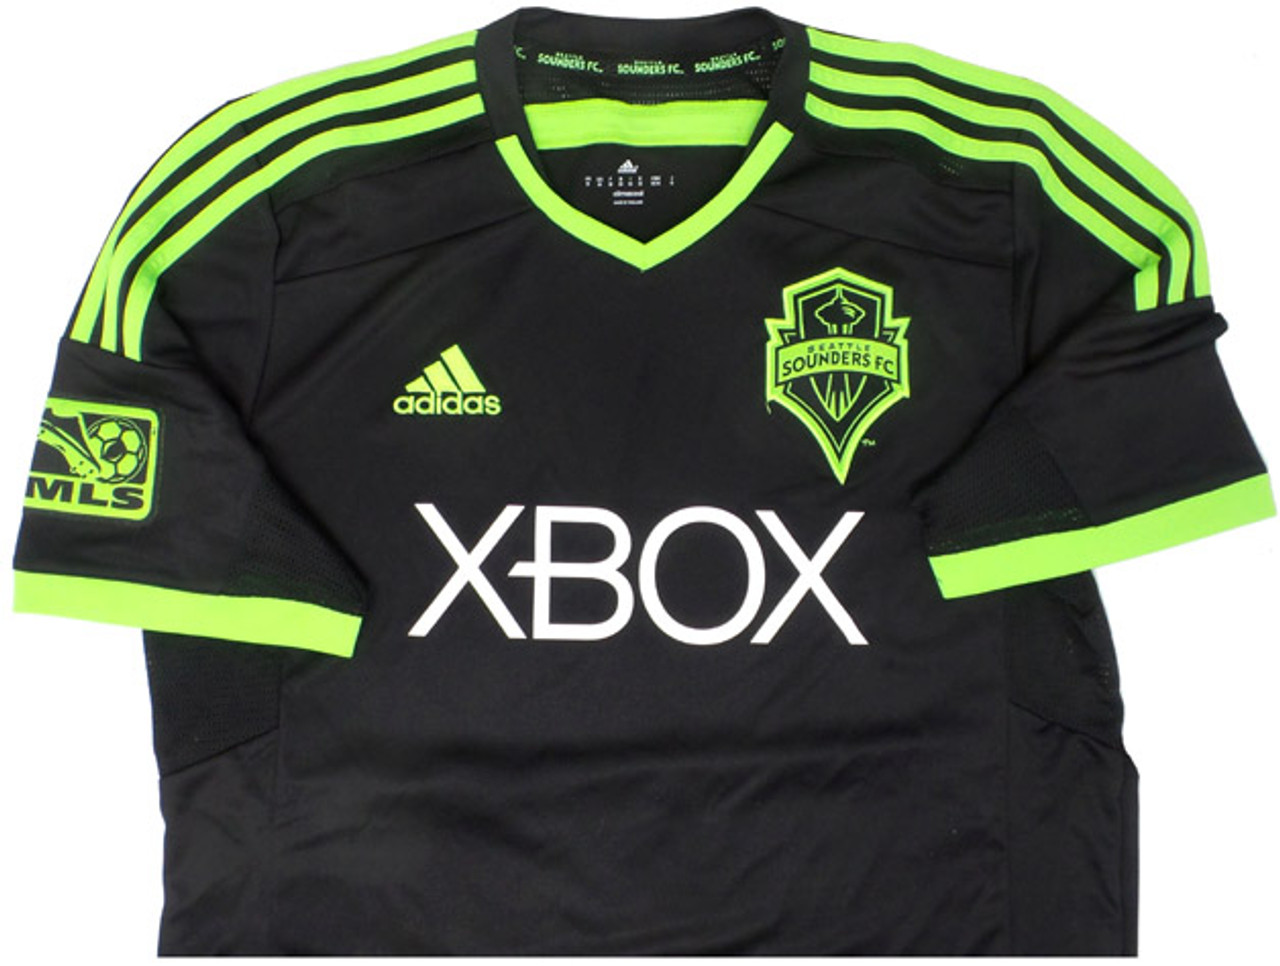 wholesale dealer 856a7 7db89 ADIDAS SEATTLE SOUNDERS 2015 AWAY JERSEY